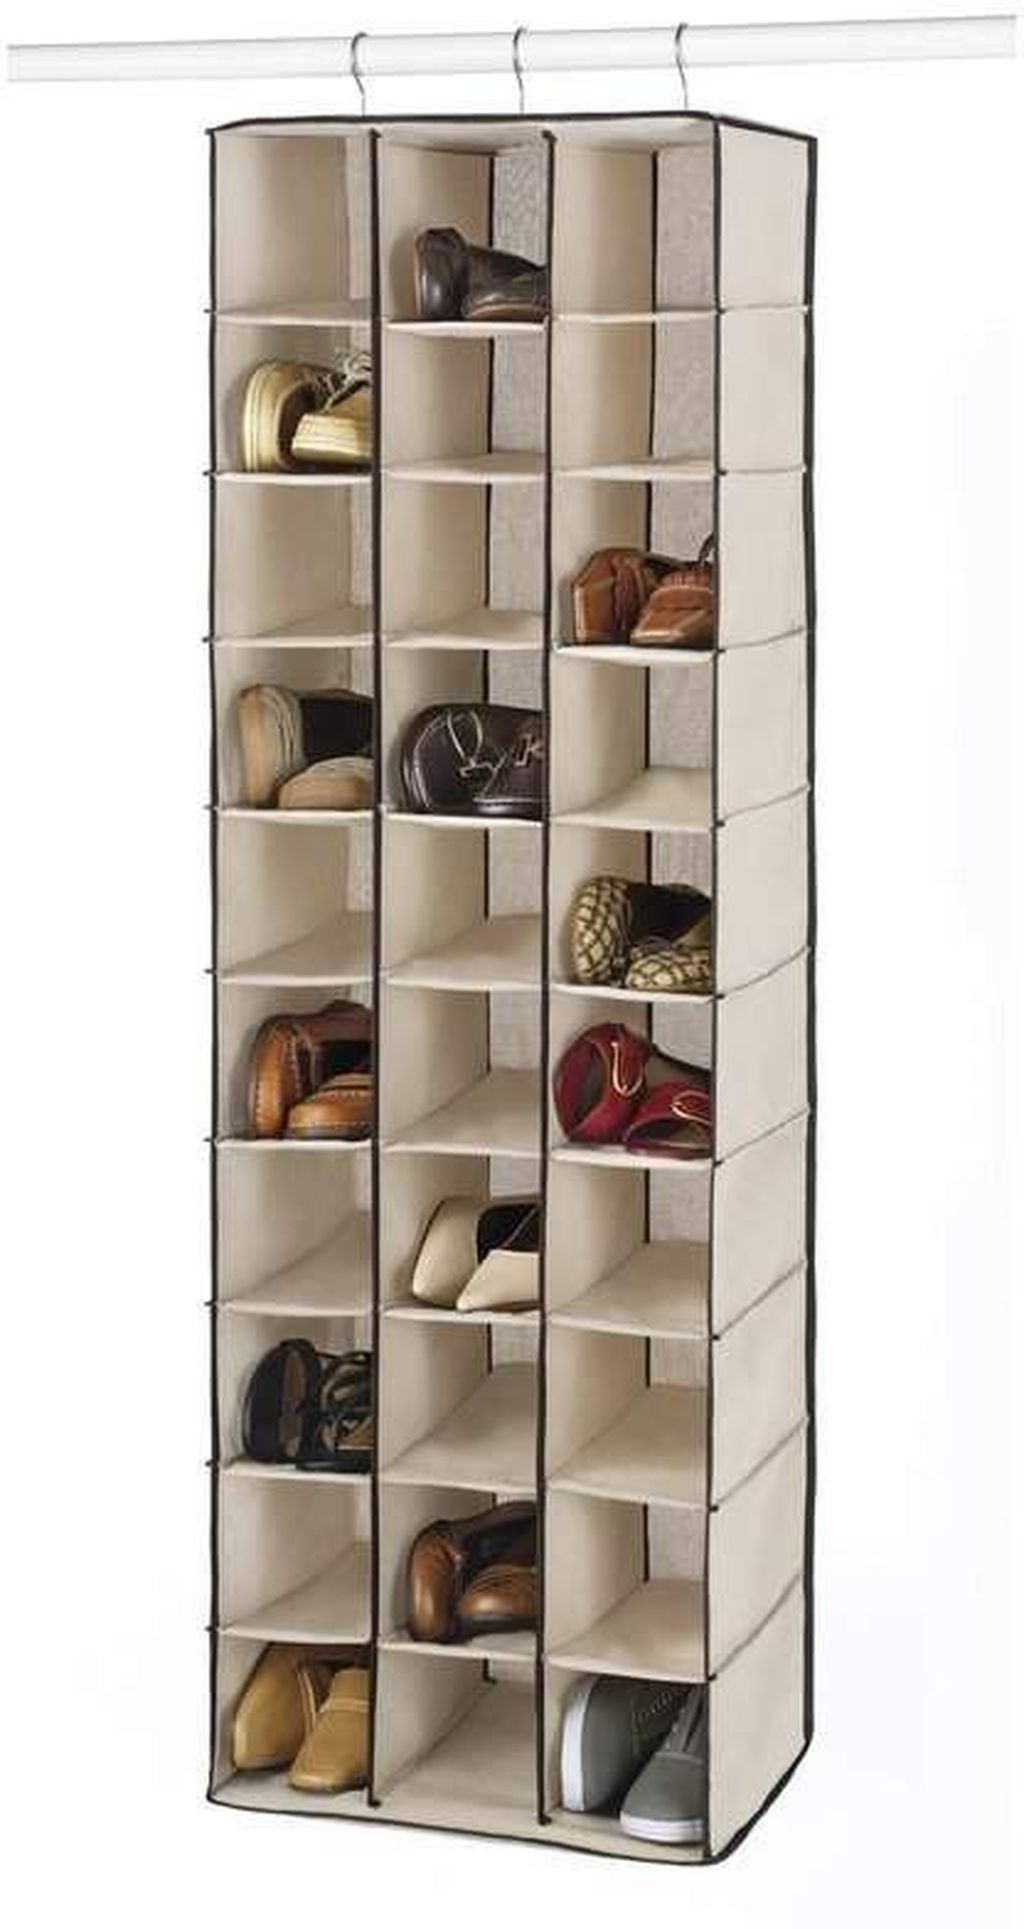 36 Delightful Diy Shoe Rack Design Ideas To Keep Your Shoes Nicely Hanging Shoe Rack Hanging Shoe Storage